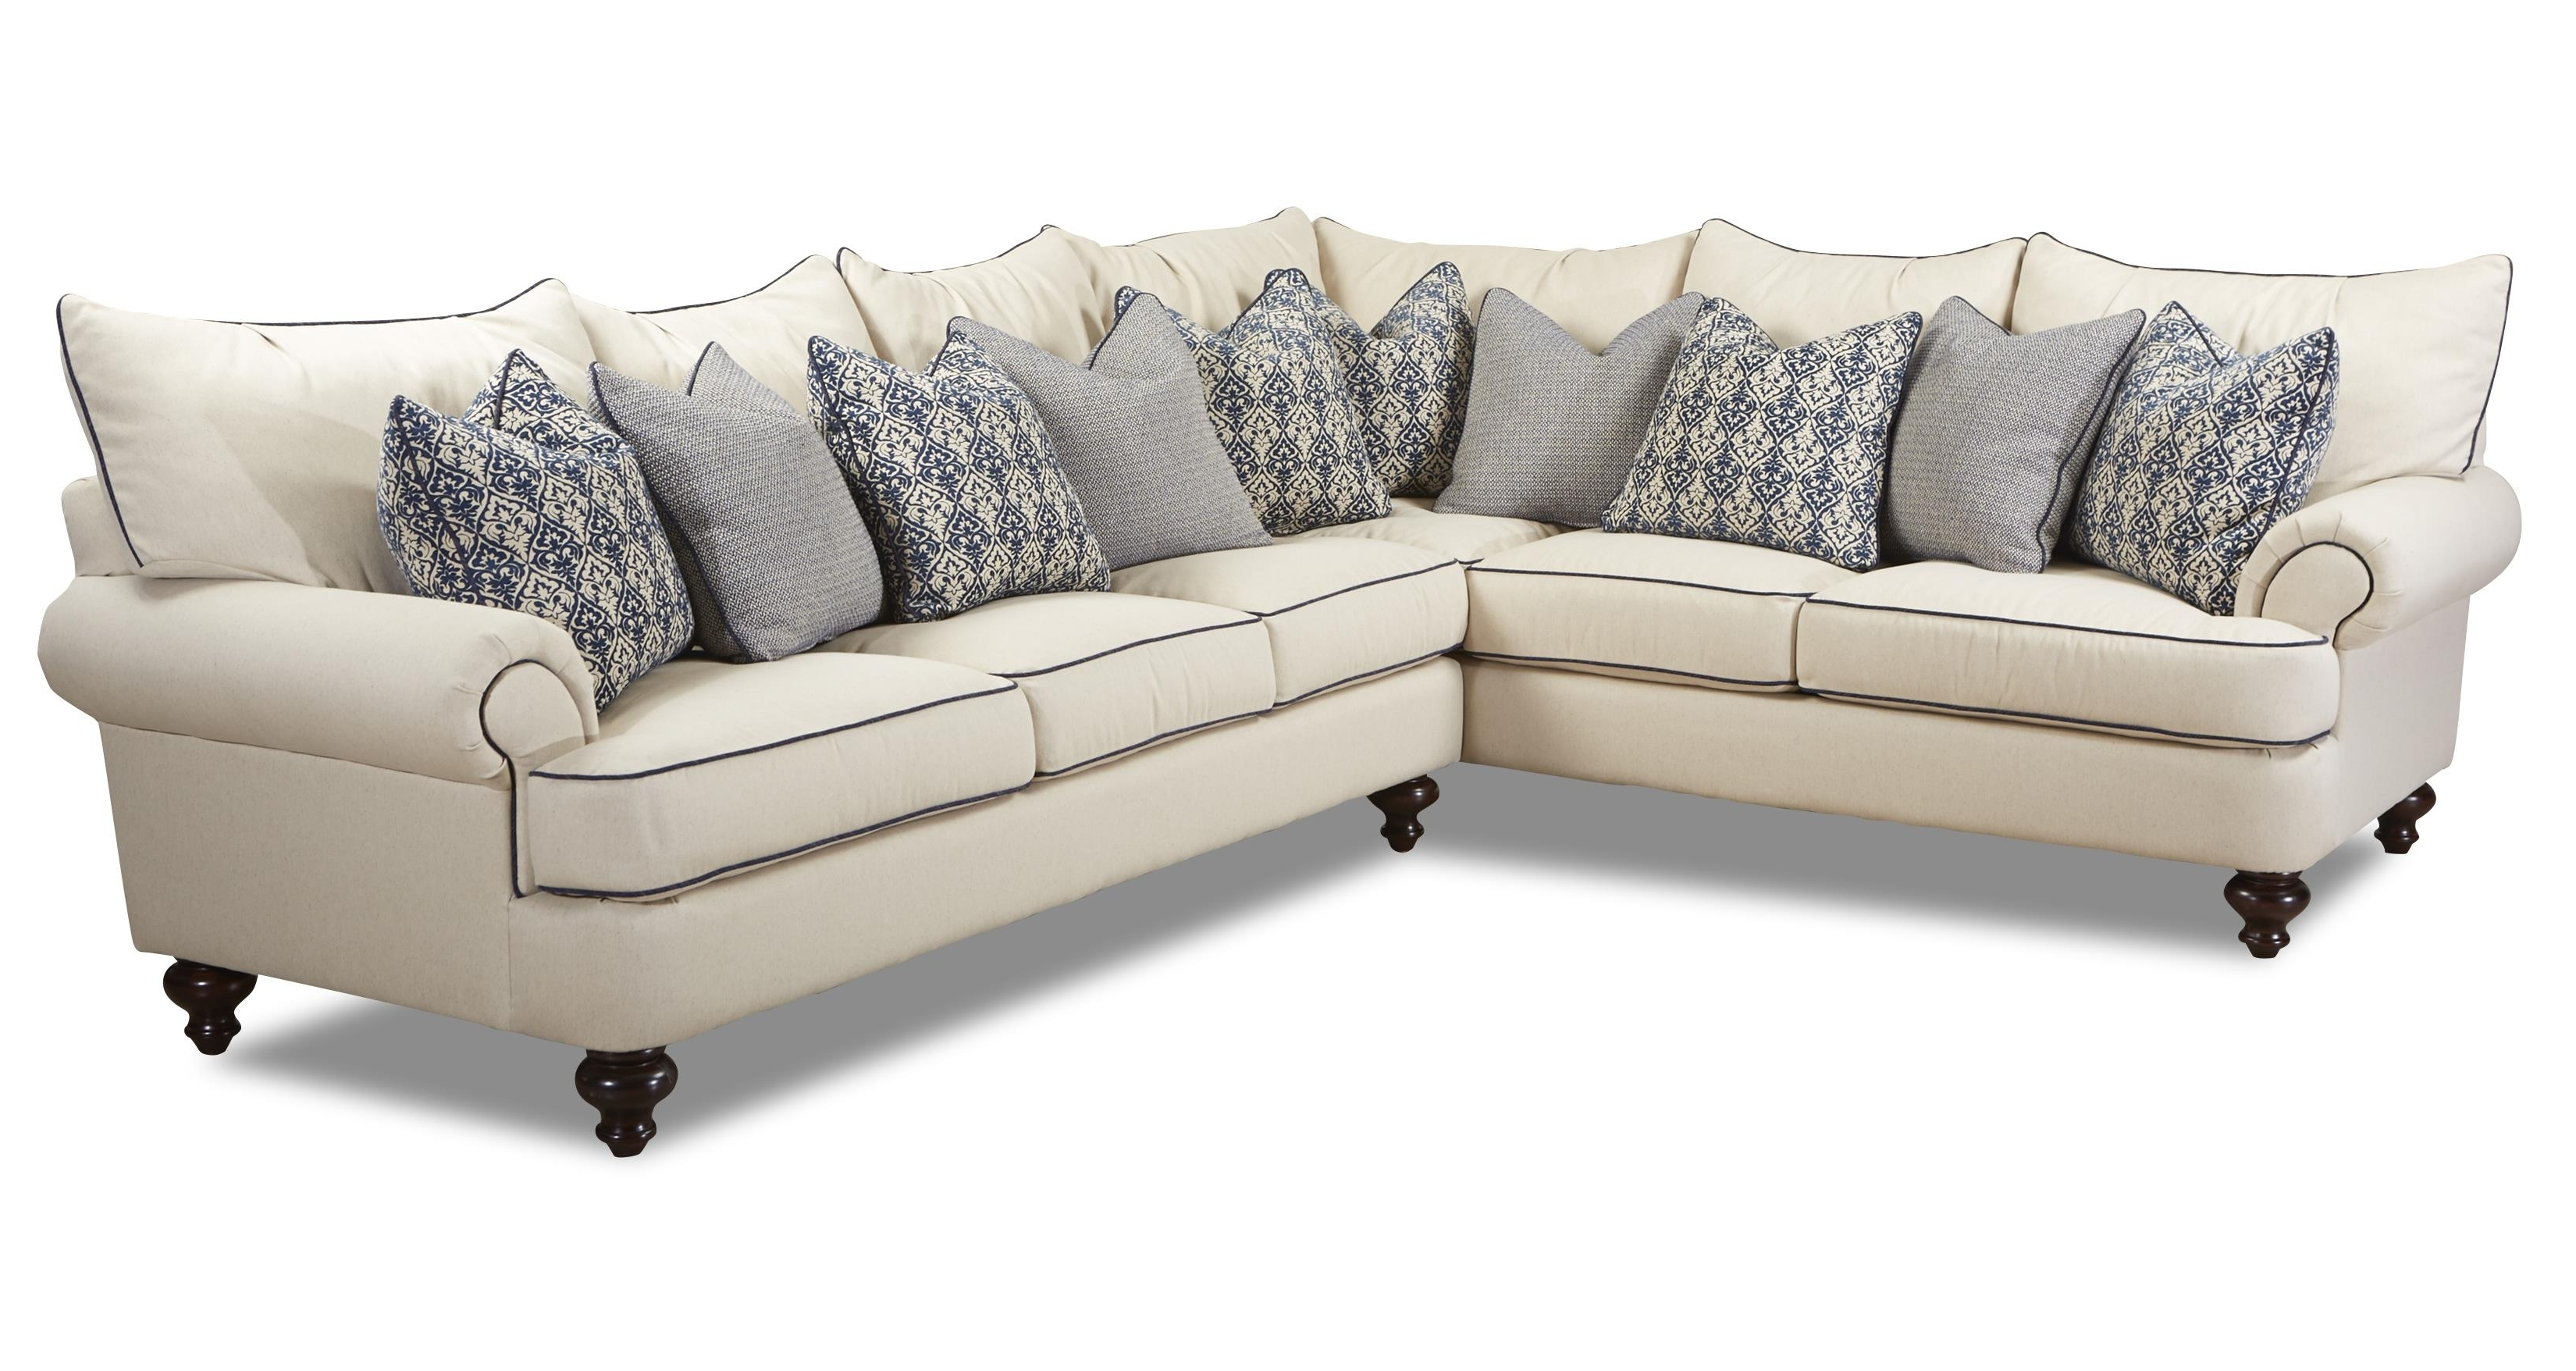 Shabby Chic Sectional Sofaklaussner (View 10 of 20)